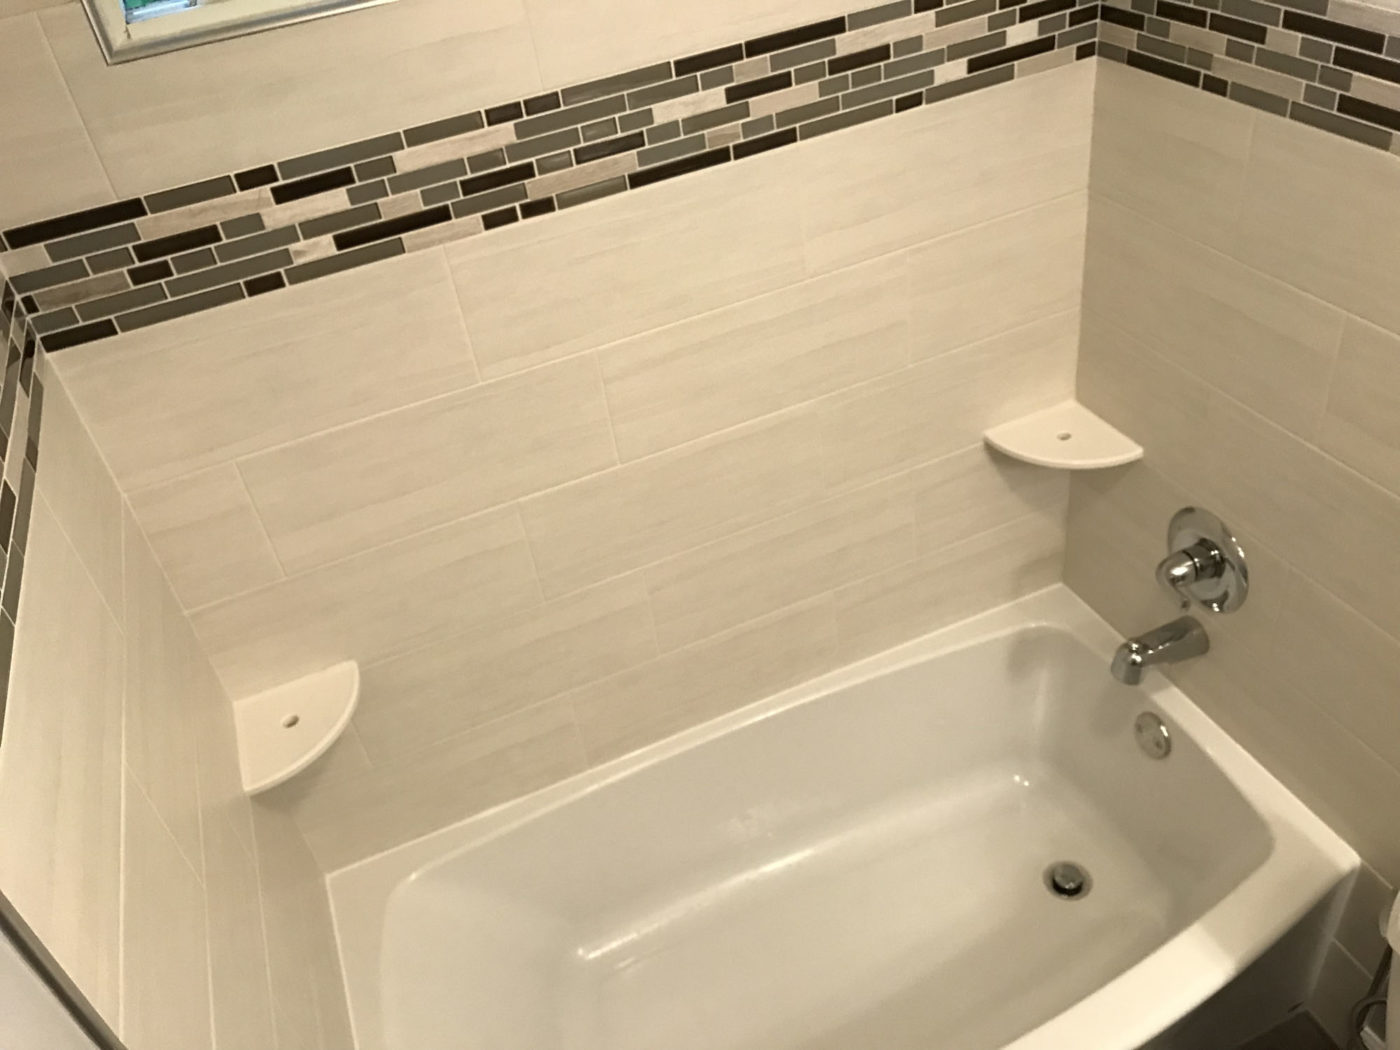 Bathroom remodeling in Hanover Park - new tile, tub